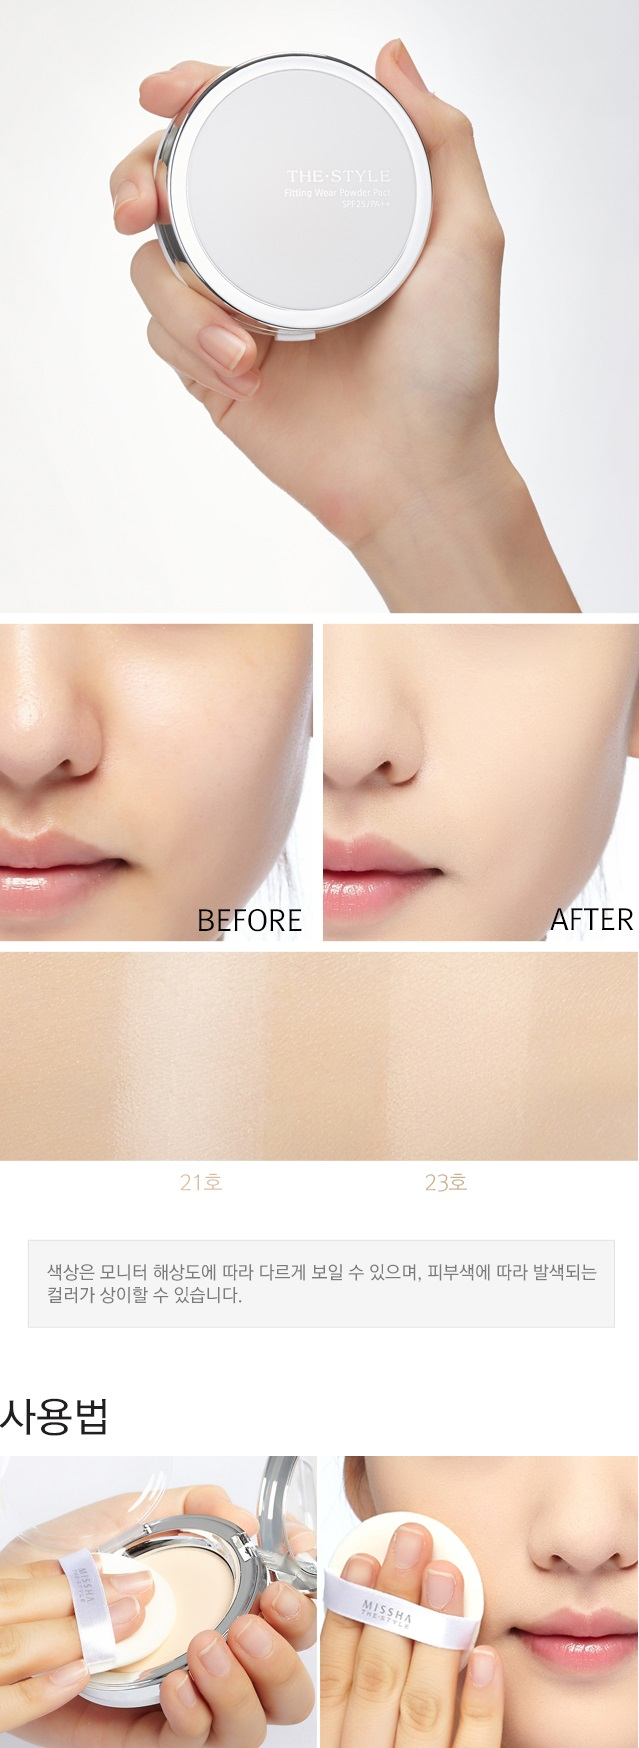 MISSHA The Style Fitting Wear Powder Pact SPF25 / PA ++ (2 Colors)